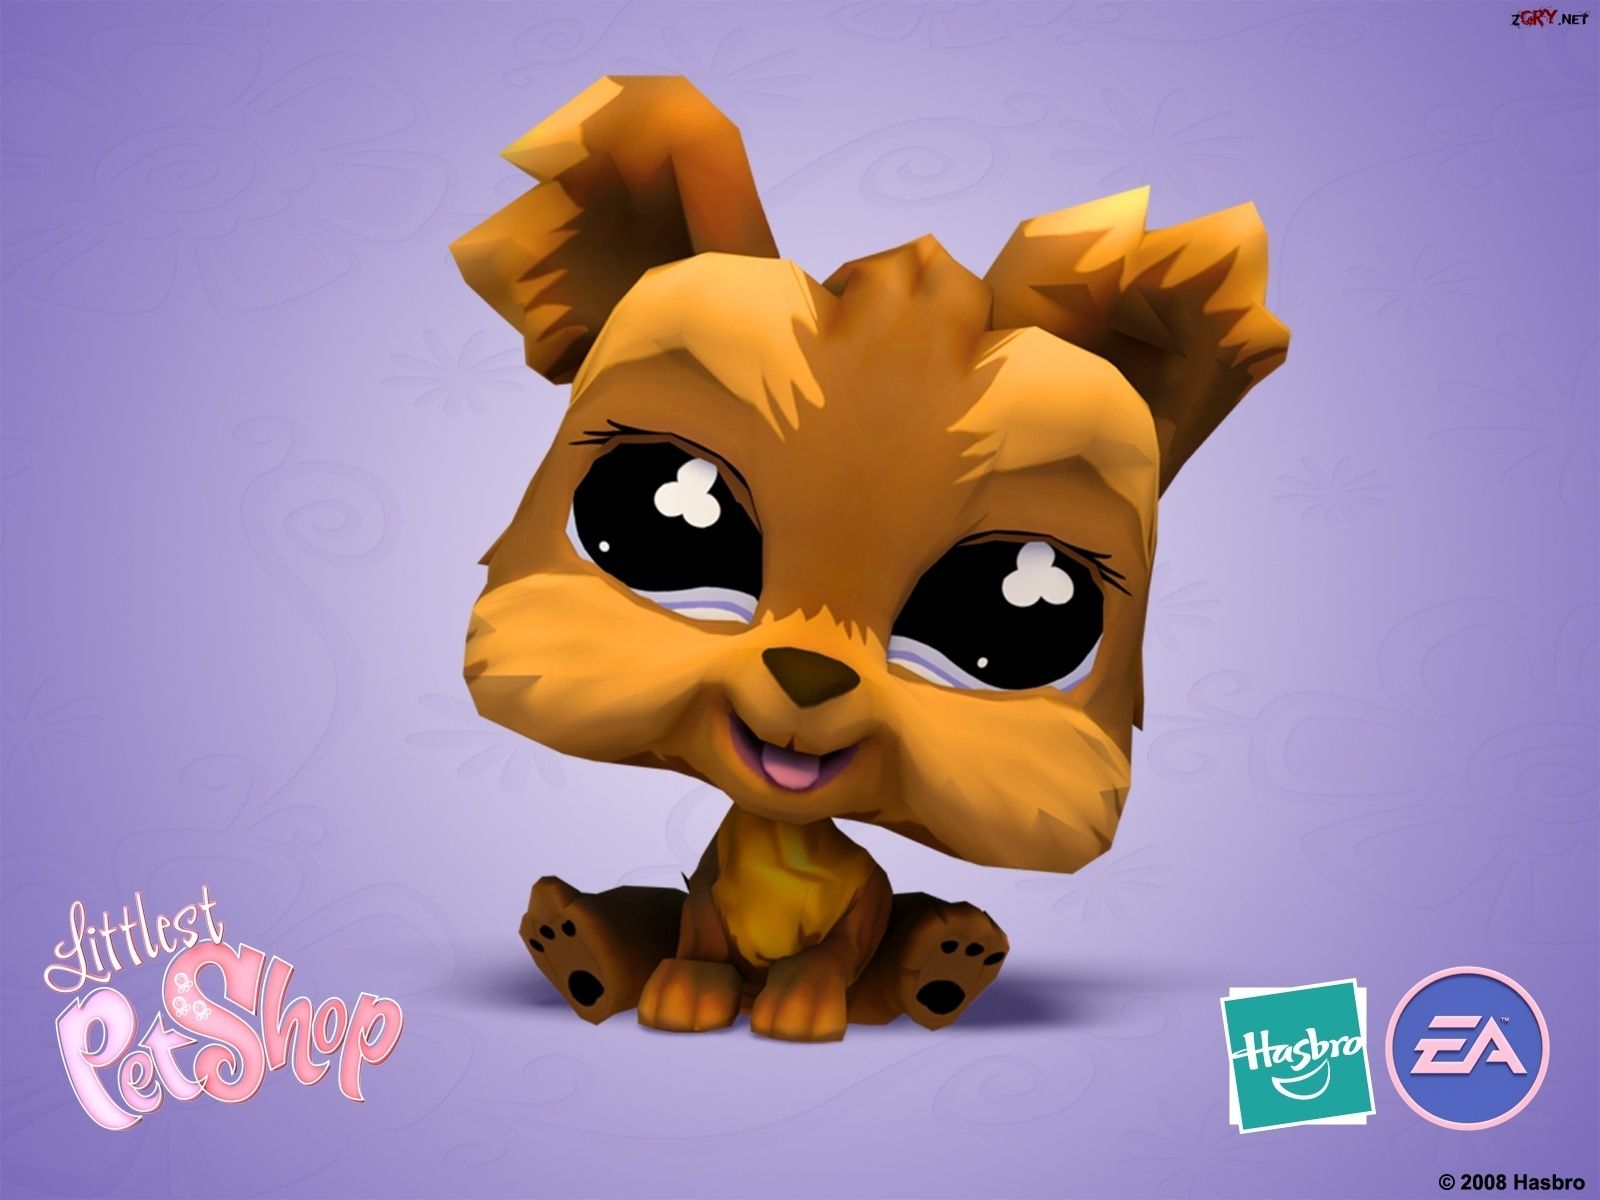 Piesek, Littlest Pet Shop